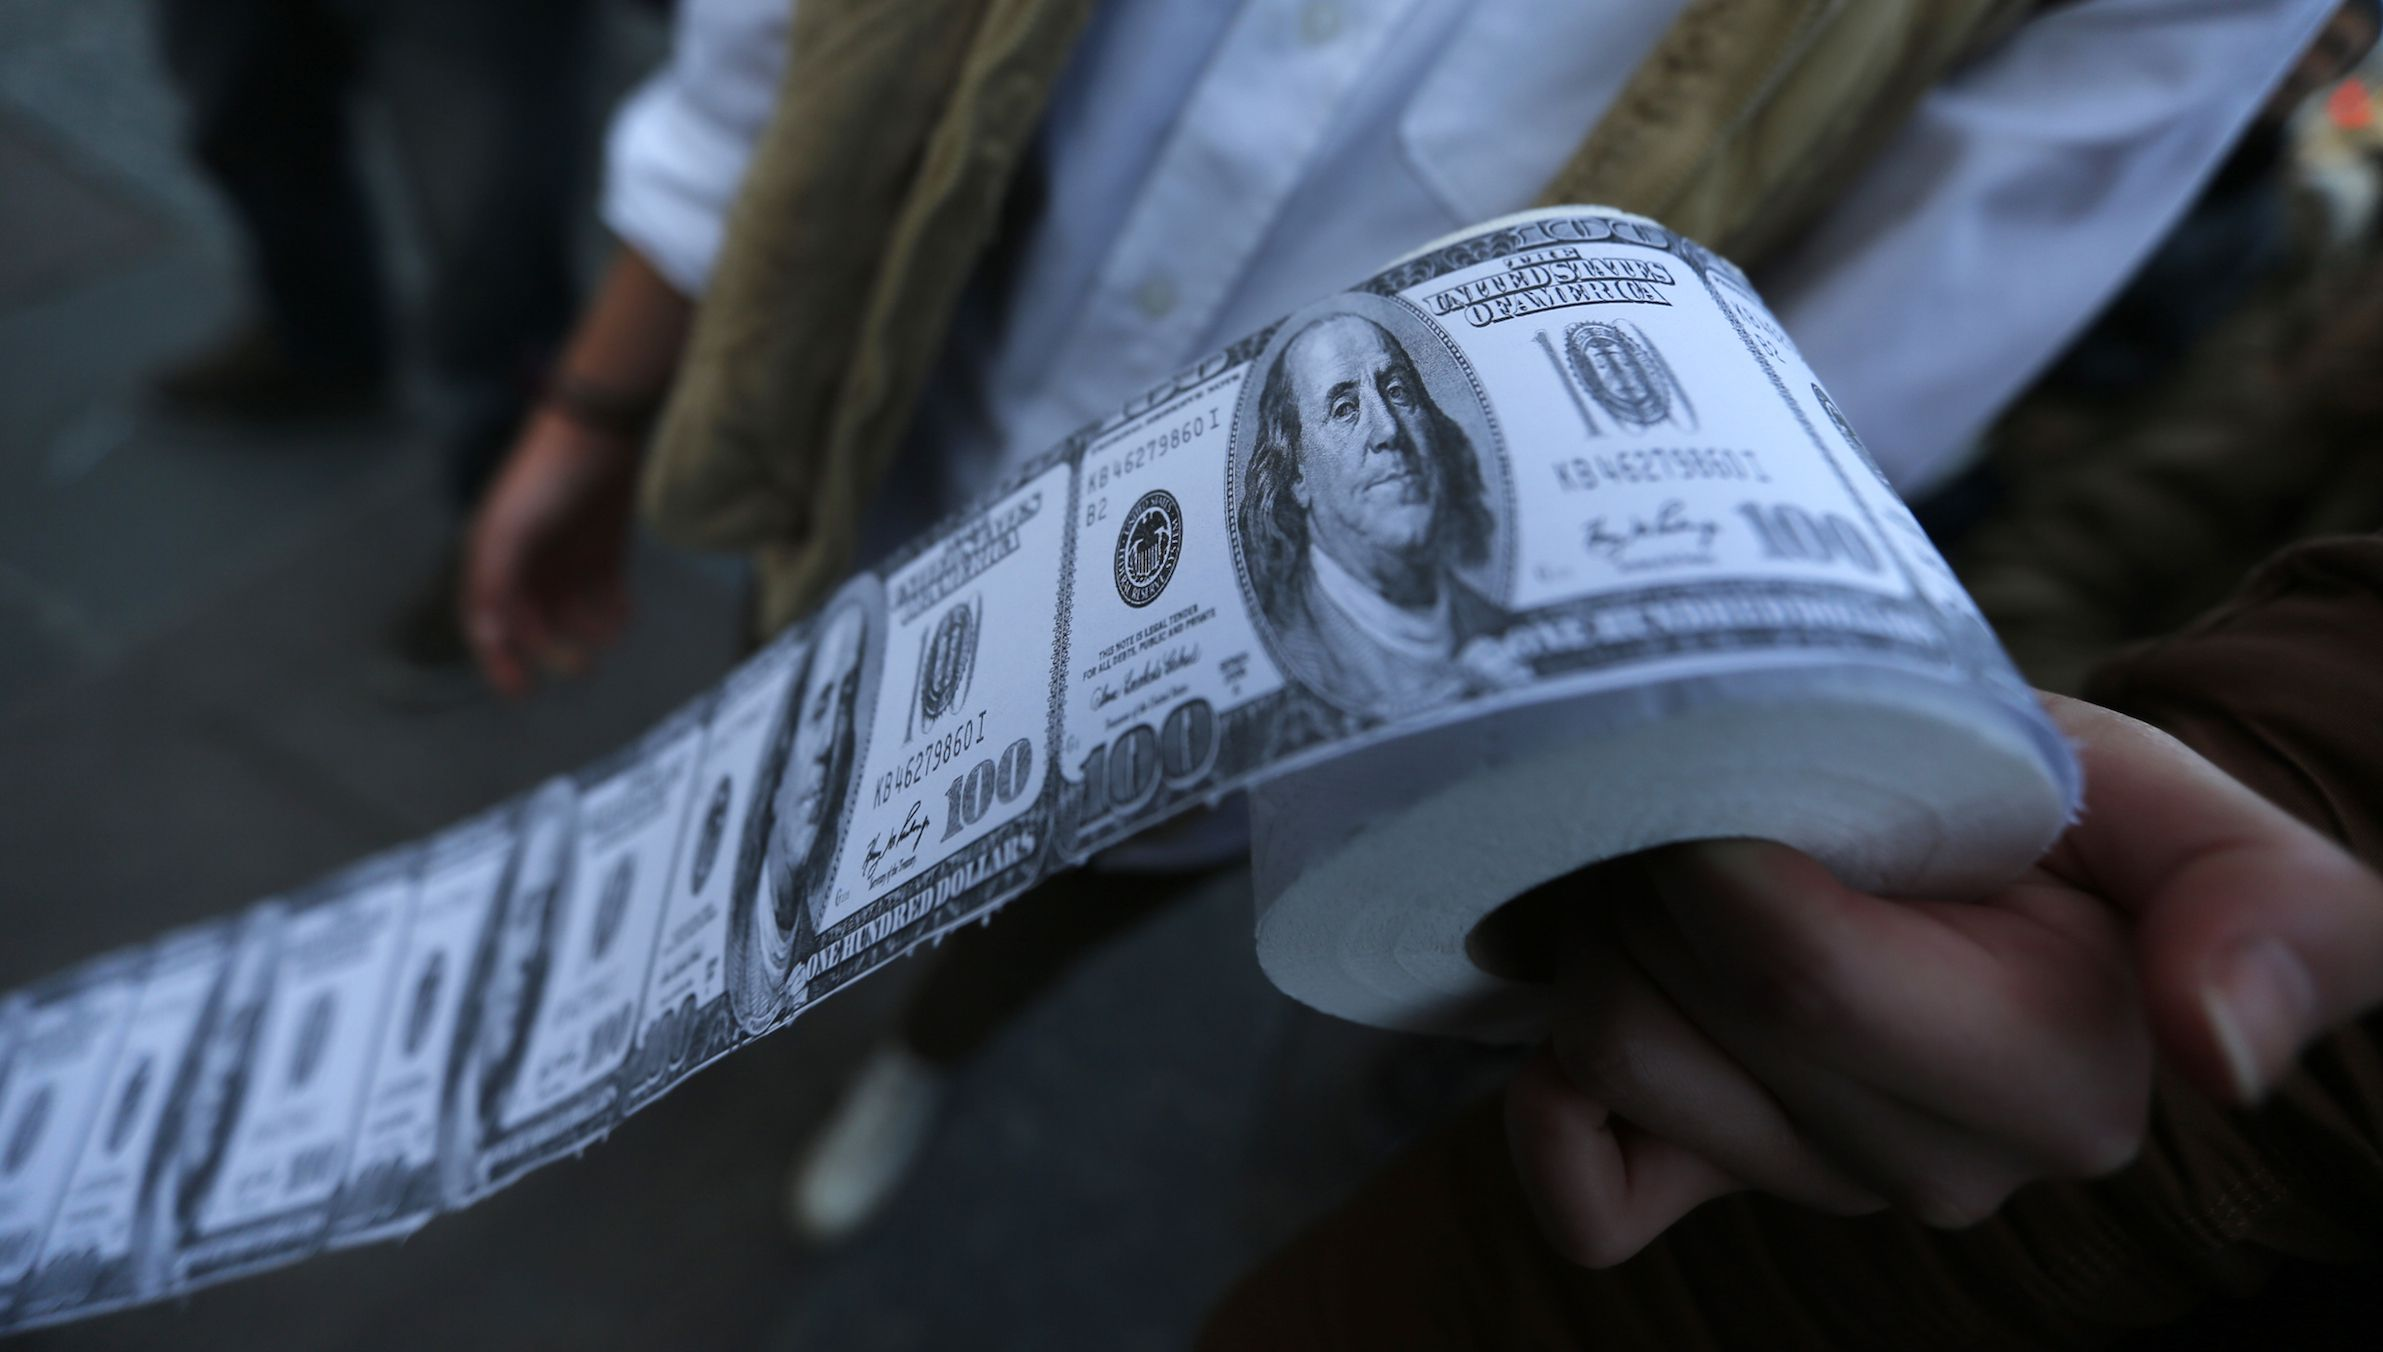 A demonstrator holds toilet paper made from fake U.S. dollars during a protest against Turkey's Prime Minister Tayyip Erdogan and his ruling Ak Party (AKP) government in Ankara February 27, 2014. An audio recording purporting to be of Erdogan giving his son business advice has been published on YouTube, following one earlier in the week that fuelled a corruption scandal and unnerved markets. Erdogan said a similar post on the video-sharing site YouTube on Monday, allegedly of him telling his son Bilal to dispose of large sums of cash as a graft investigation erupted, had been faked by his political enemies. REUTERS/Umit Bektas (TURKEY - Tags: POLITICS CIVIL UNREST CRIME LAW) - RTR3FSFR